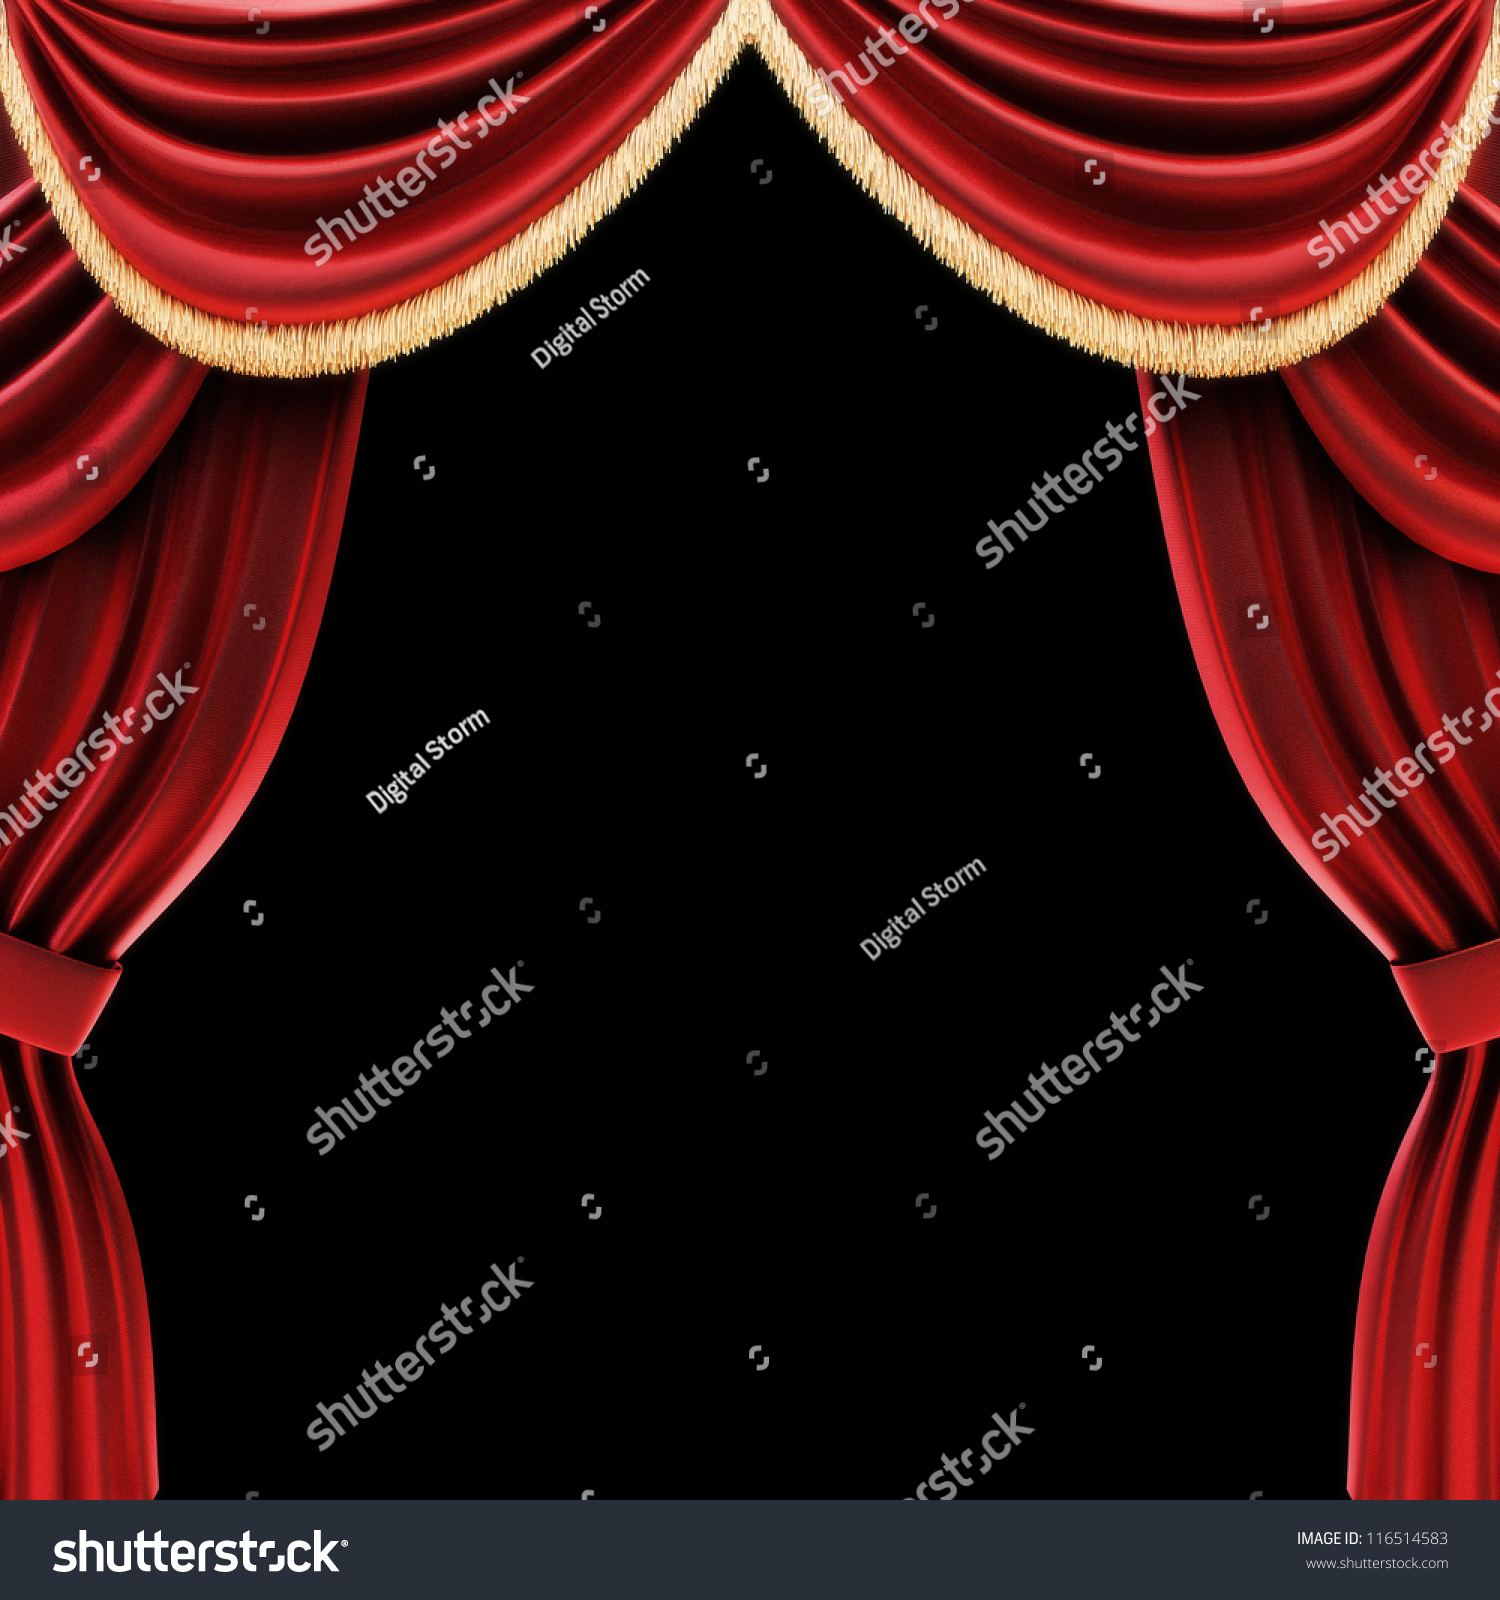 Black stage curtains black stage curtain - Open Theater Drapes Or Stage Curtains With A Black Background